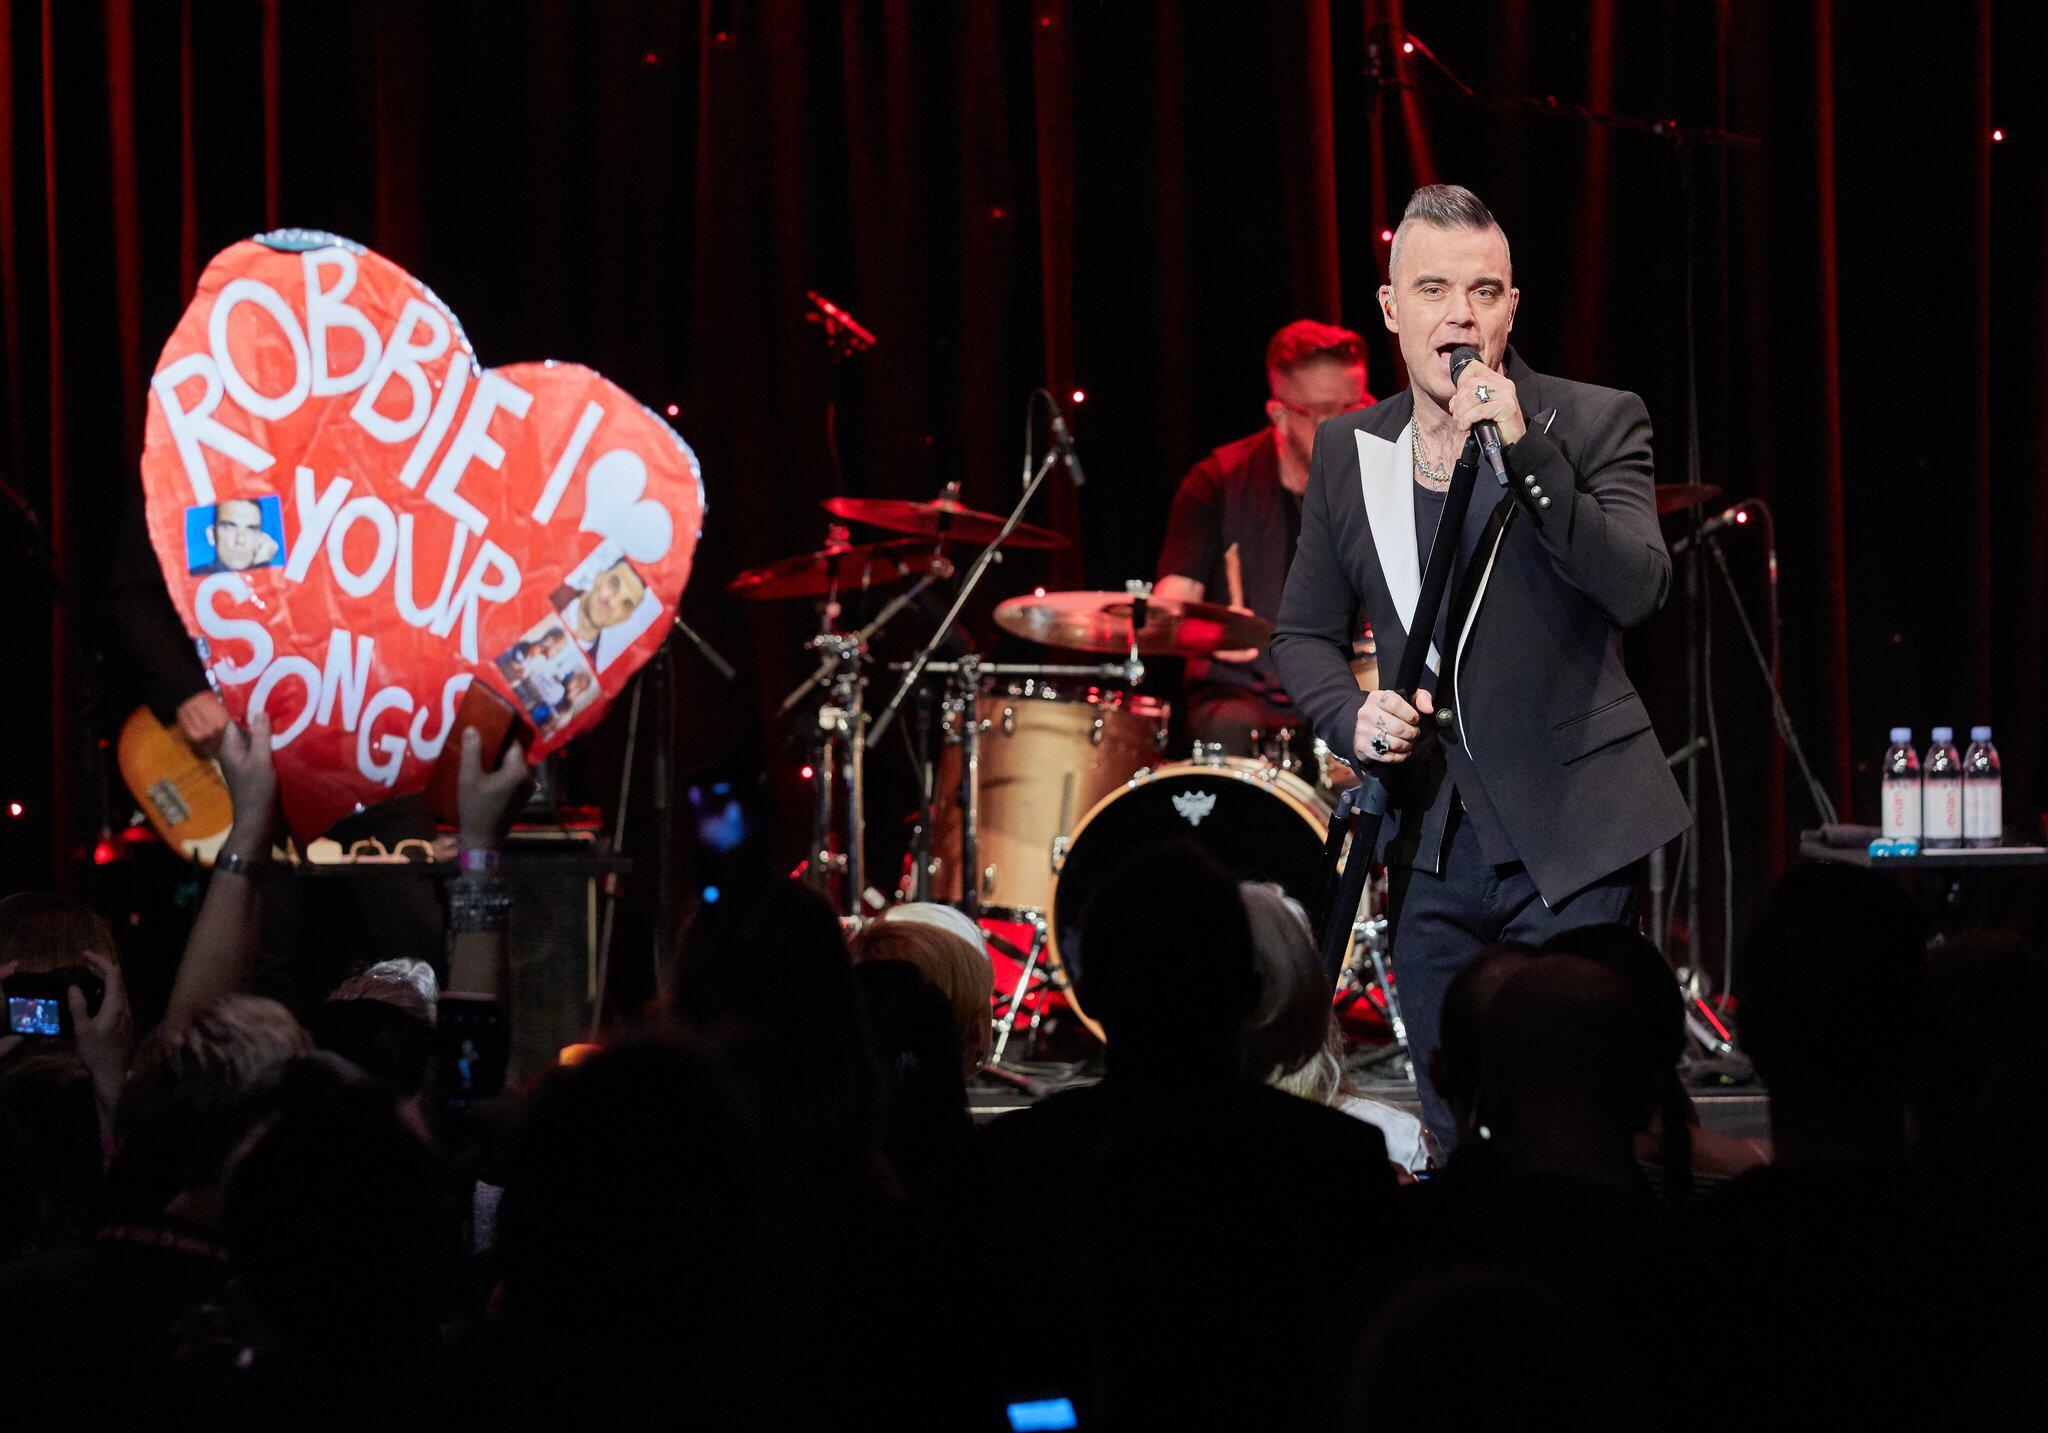 Bild zu Fankonzert Robbie Williams